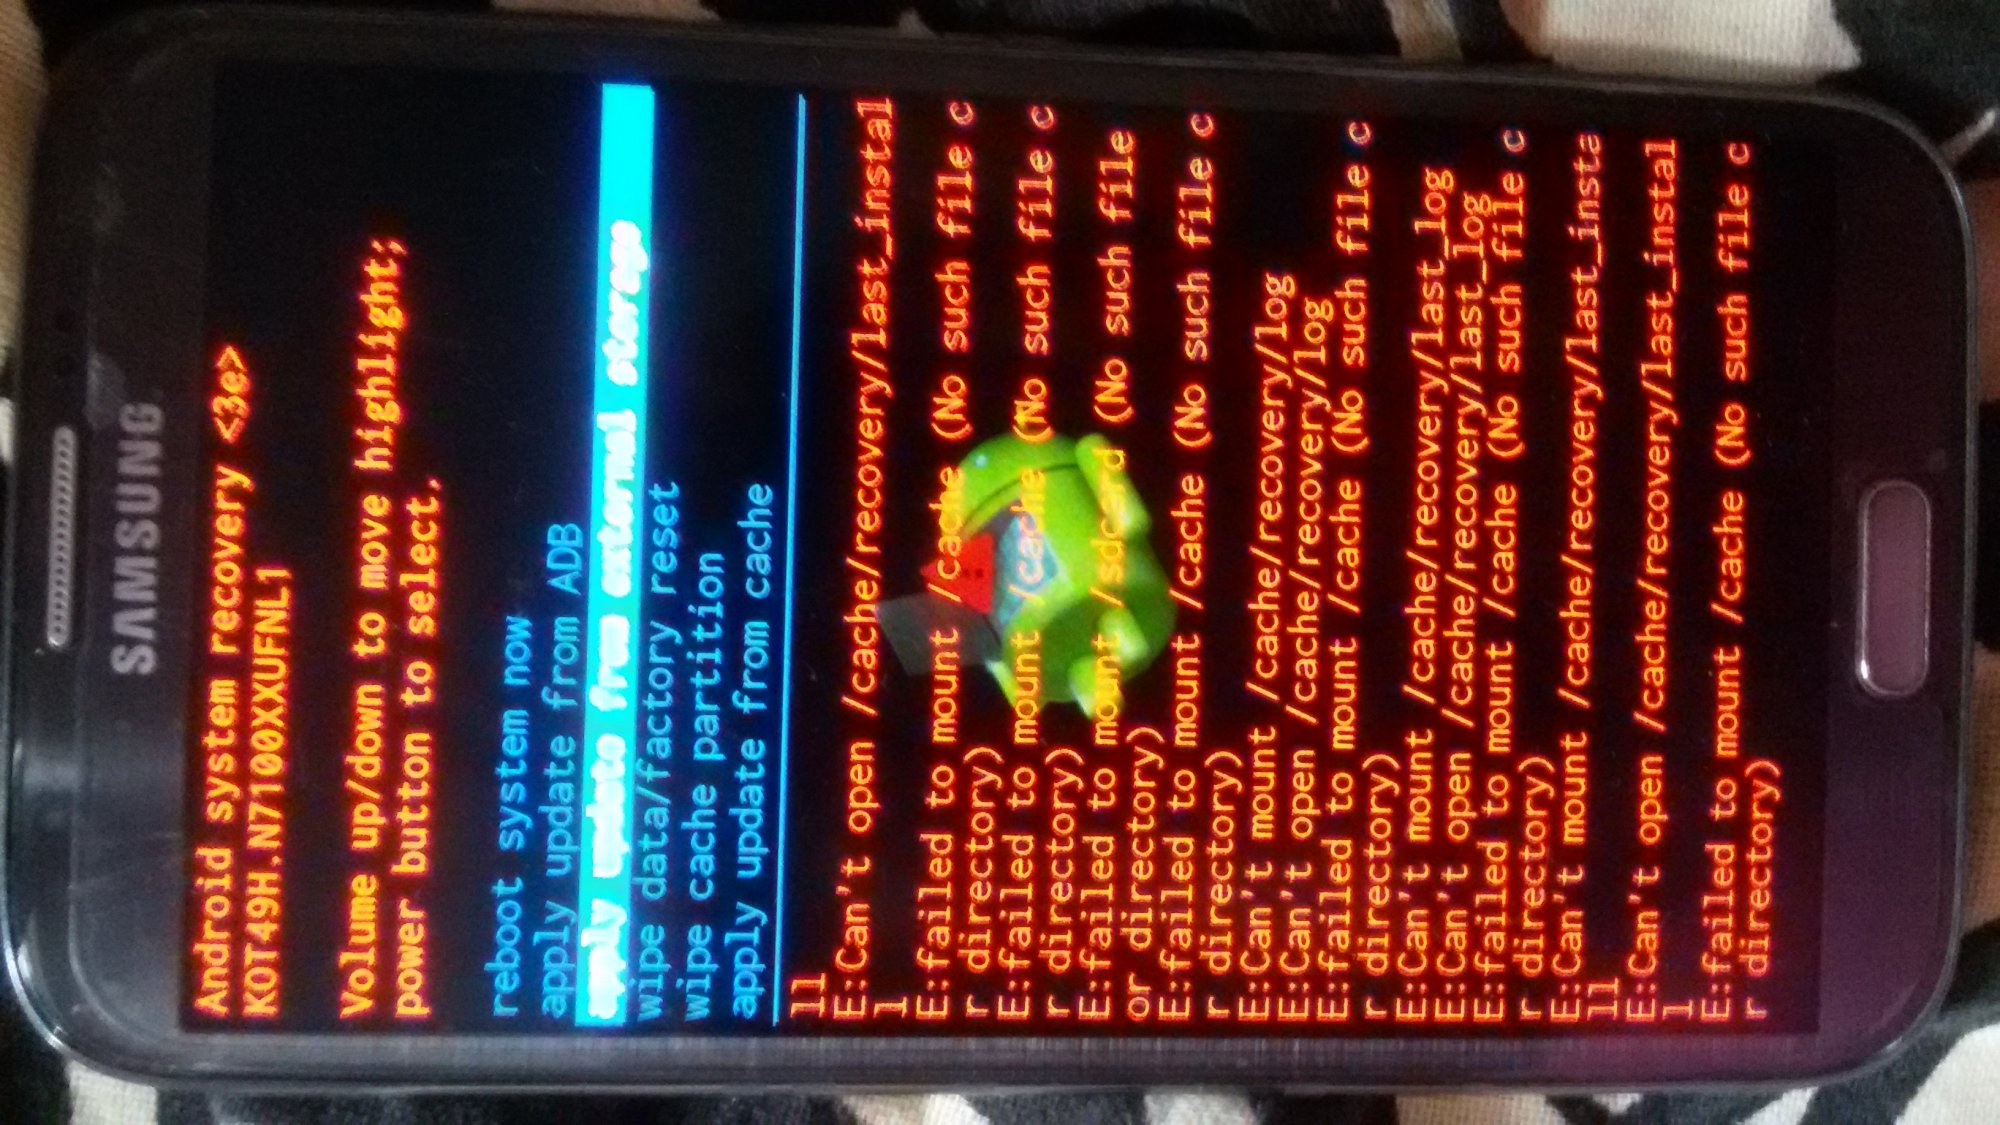 Can't Mount /cache/recovery - Samsung Fascinate | Android Forums